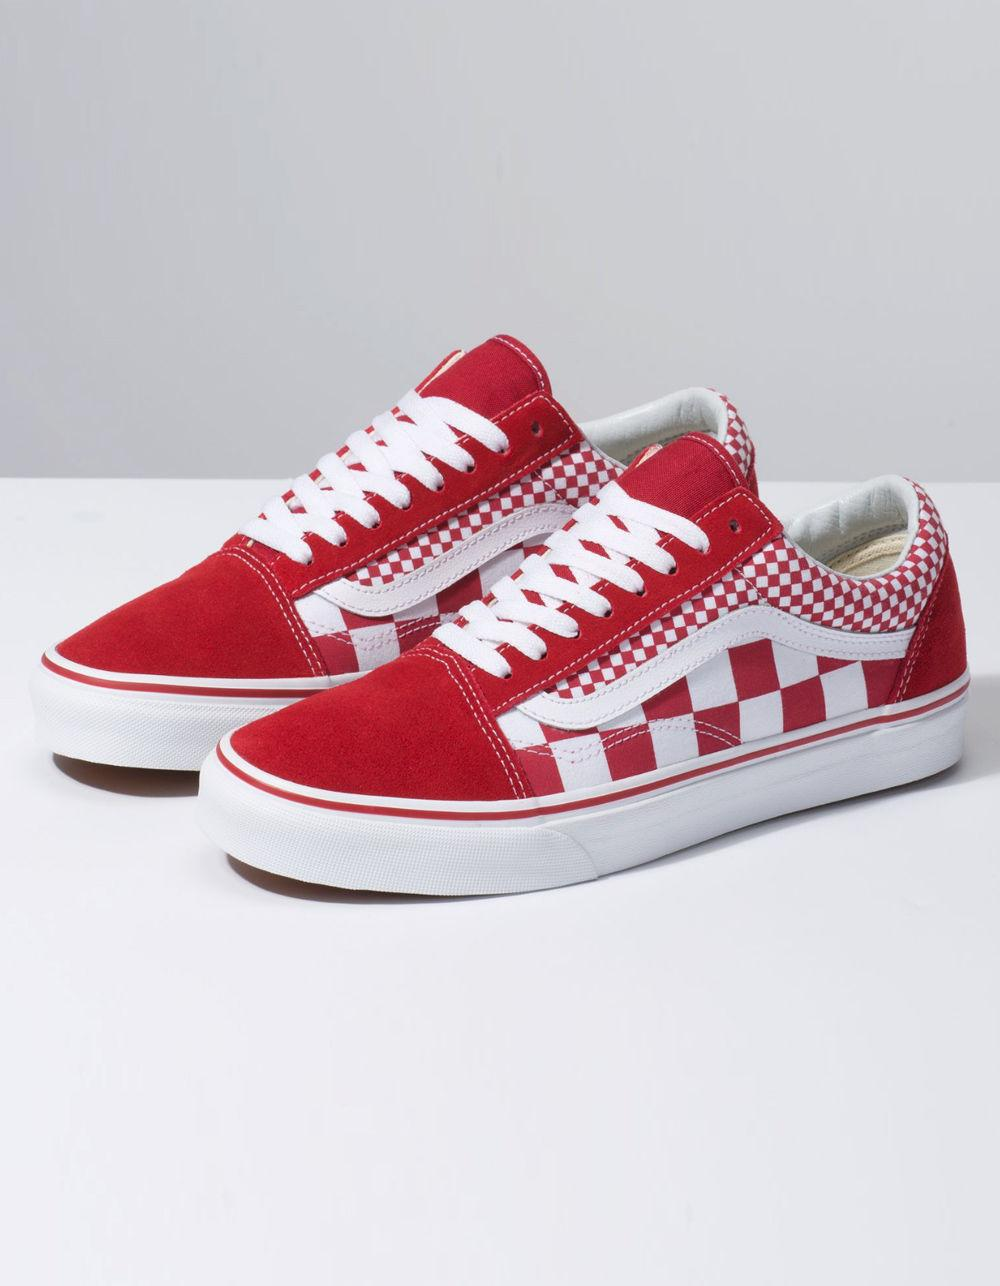 b76b3877714 Lyst - Vans Mix Checker Old Skool Chili Pepper   True White Shoes in Red -  Save 23%